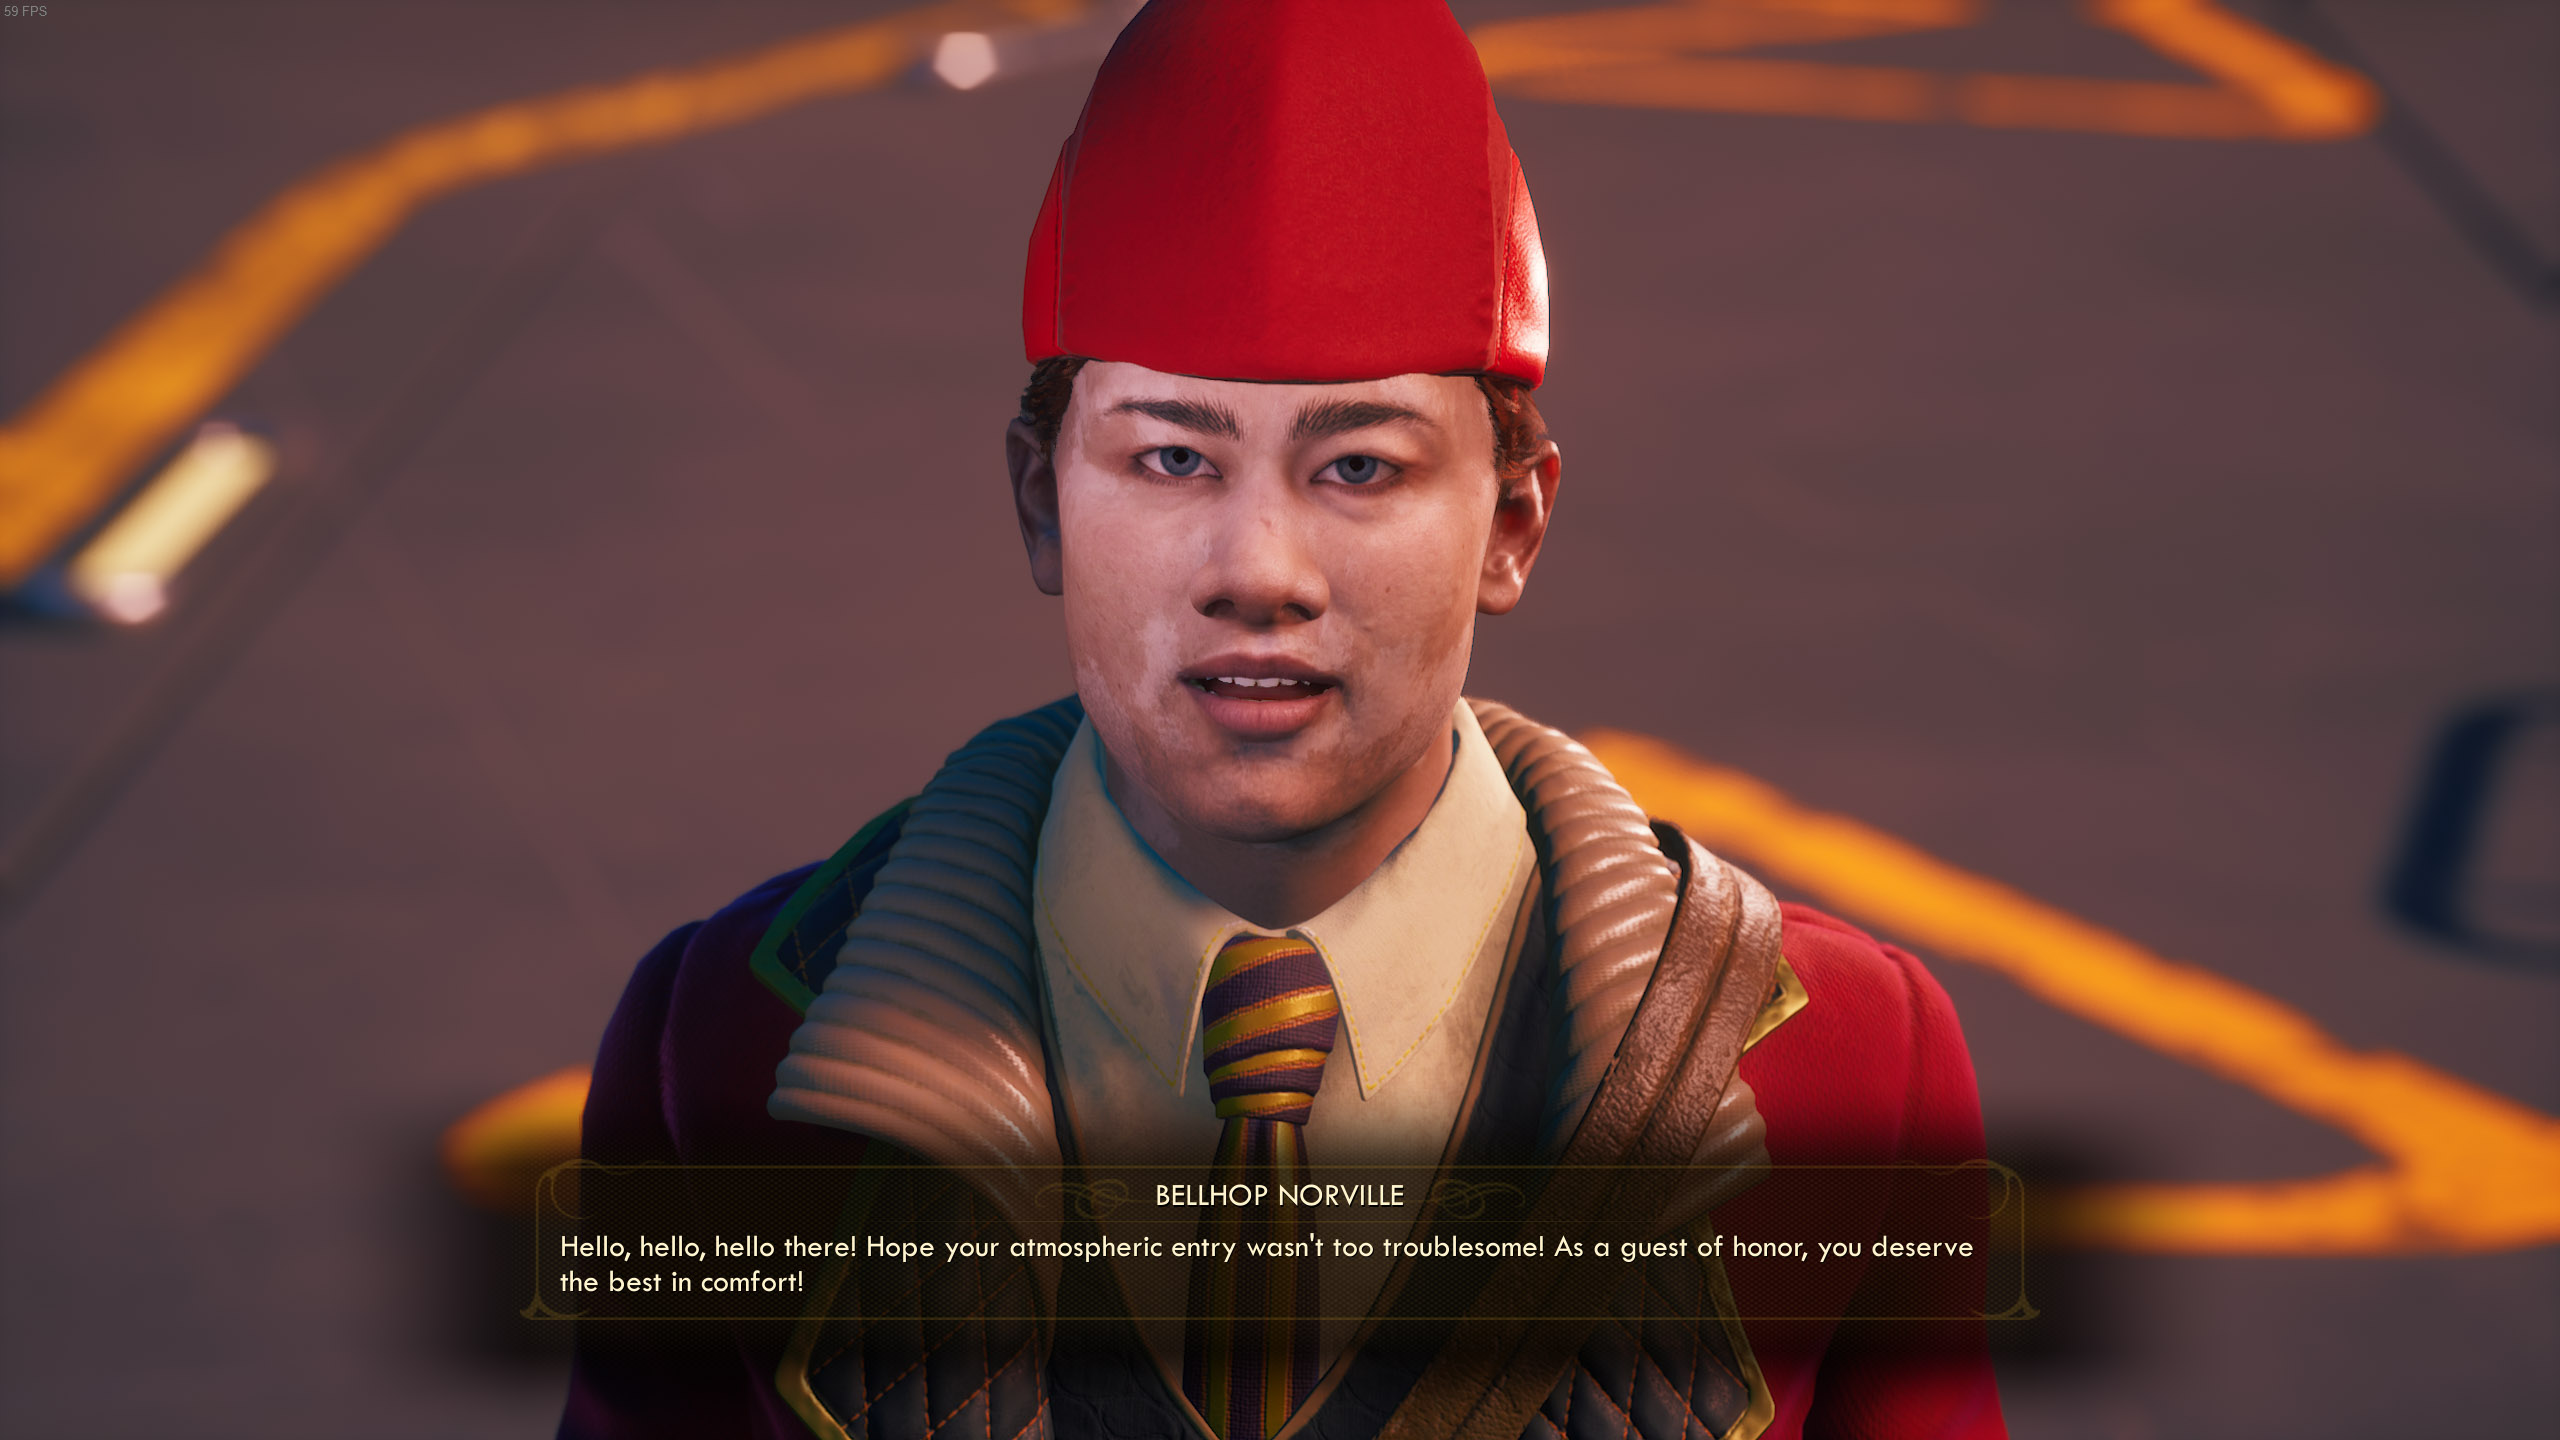 talk to Bellhop Norvile - The Outer Worlds: Murder on Eridanos